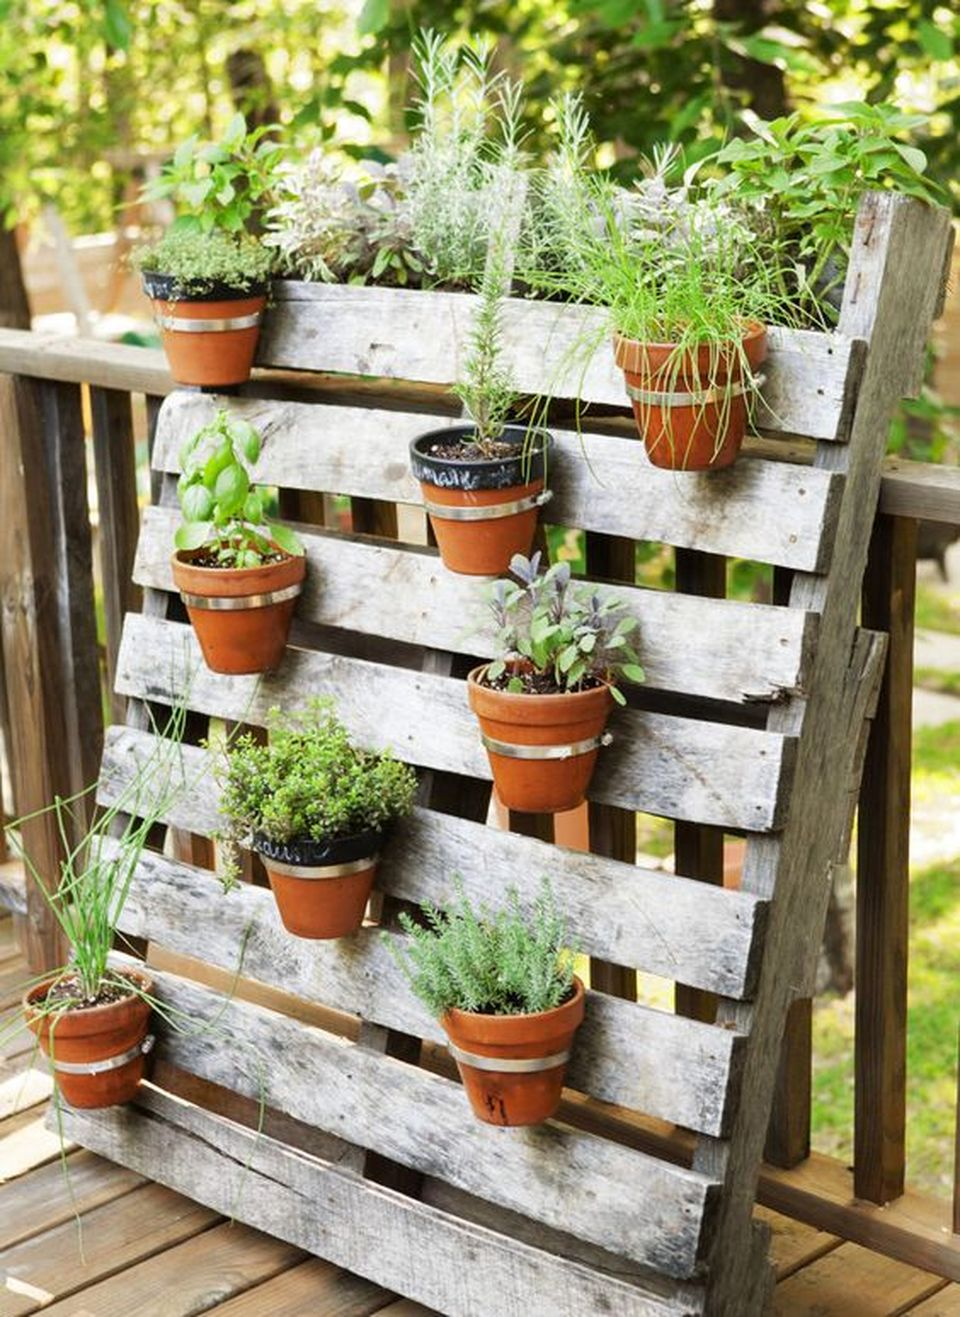 Inspiring Vertical Garden Ideas for Small Space 36 ...